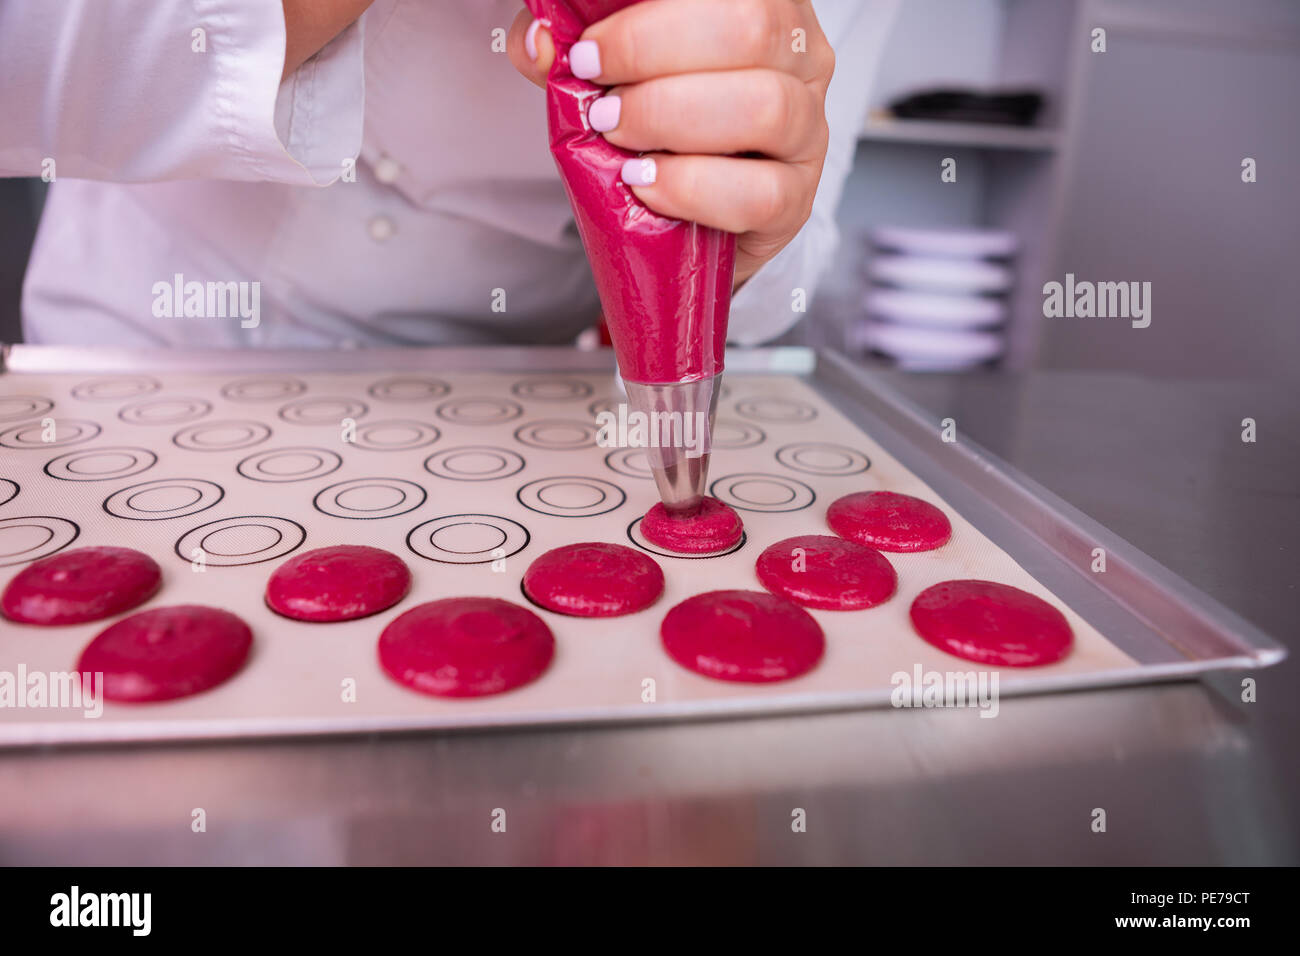 Female baker using pastry bag while cooking pink marshmallows - Stock Image